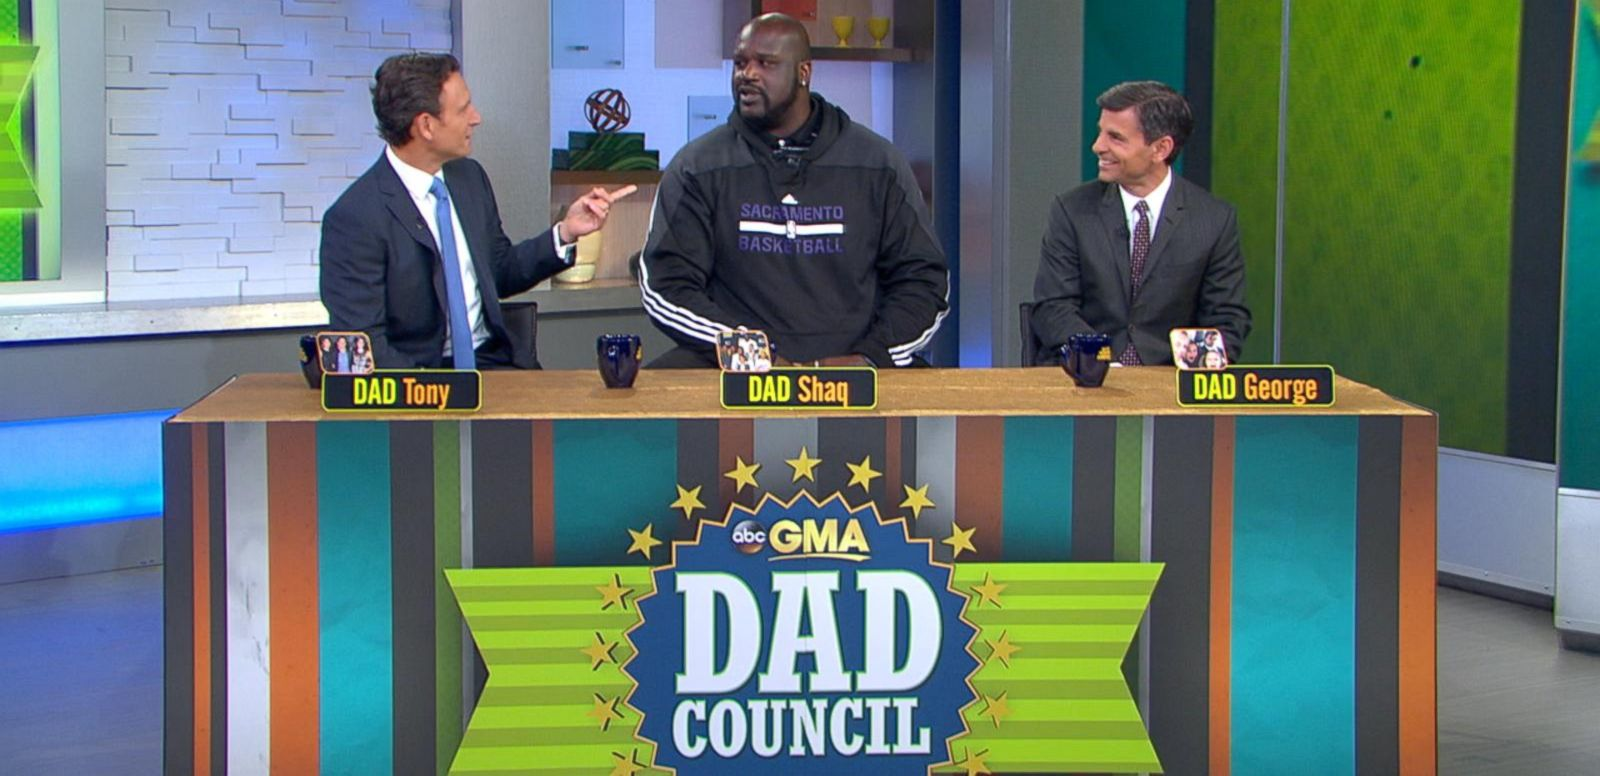 VIDEO: Celebrity Dads Answer Viewer Questions on Parenting